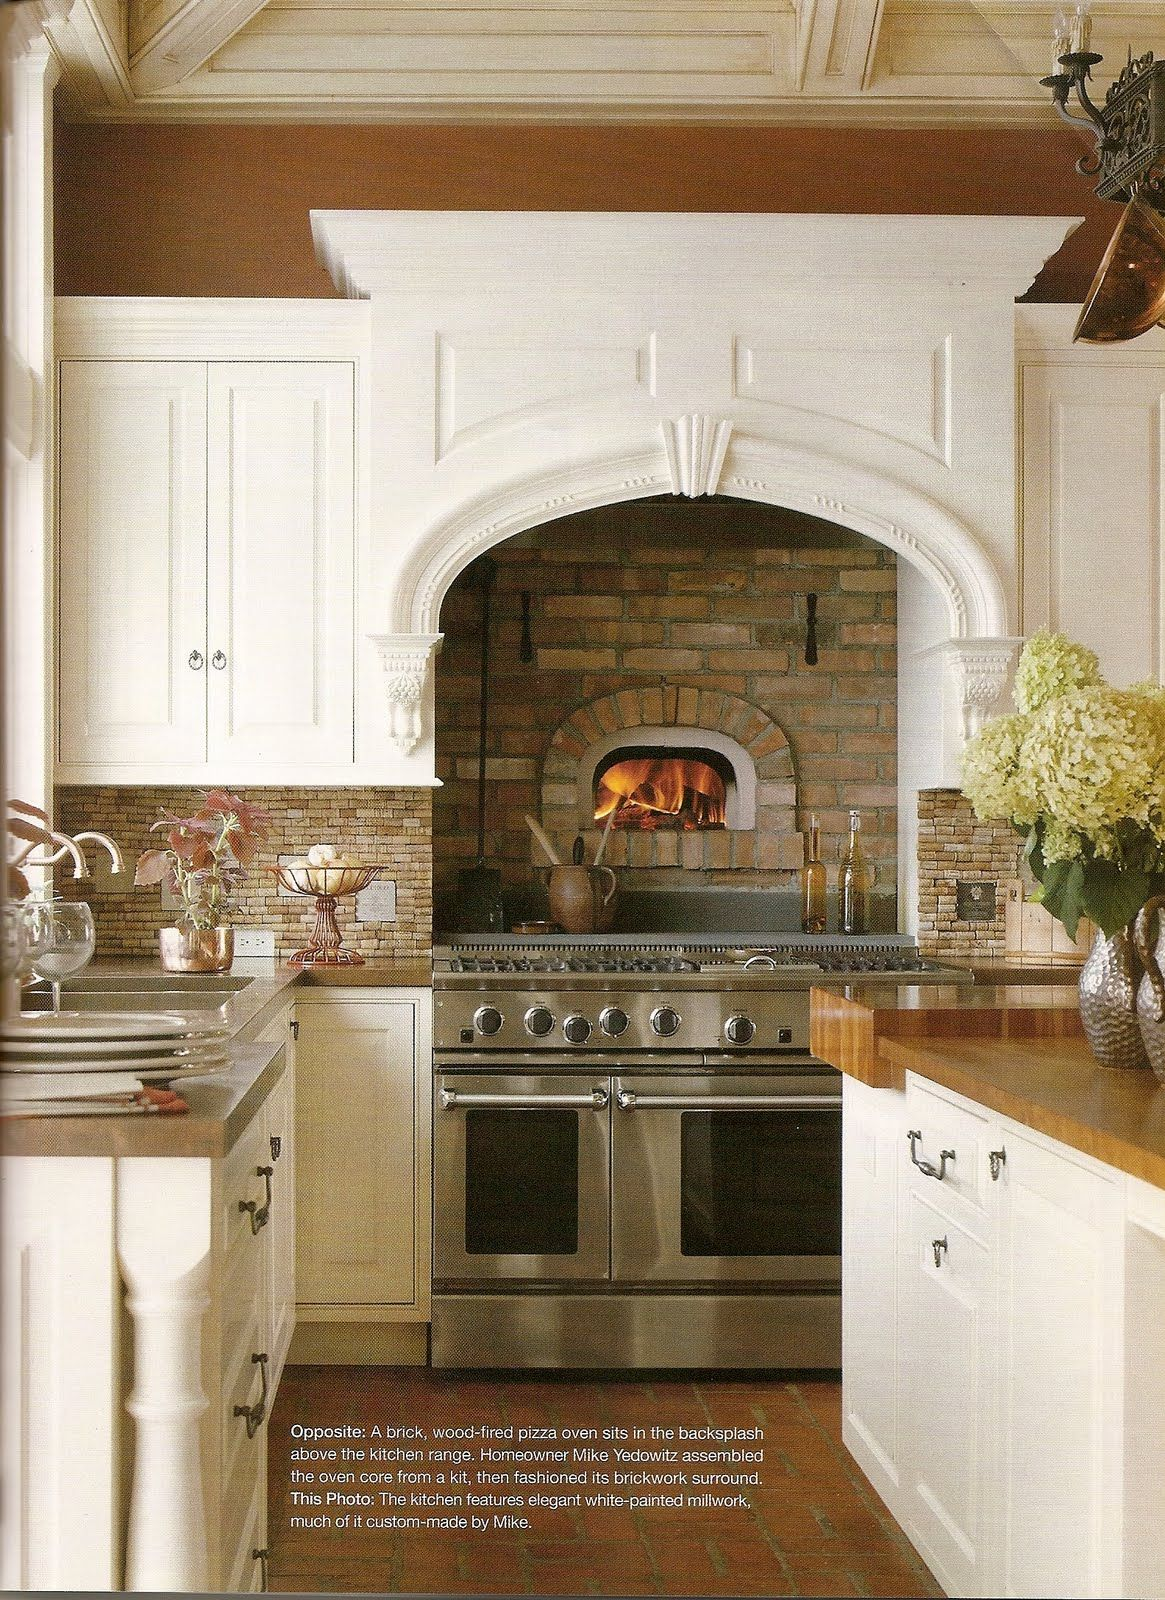 Kit Kitchens Kitchen Design Love The Built In Brick Wood Fire Oven